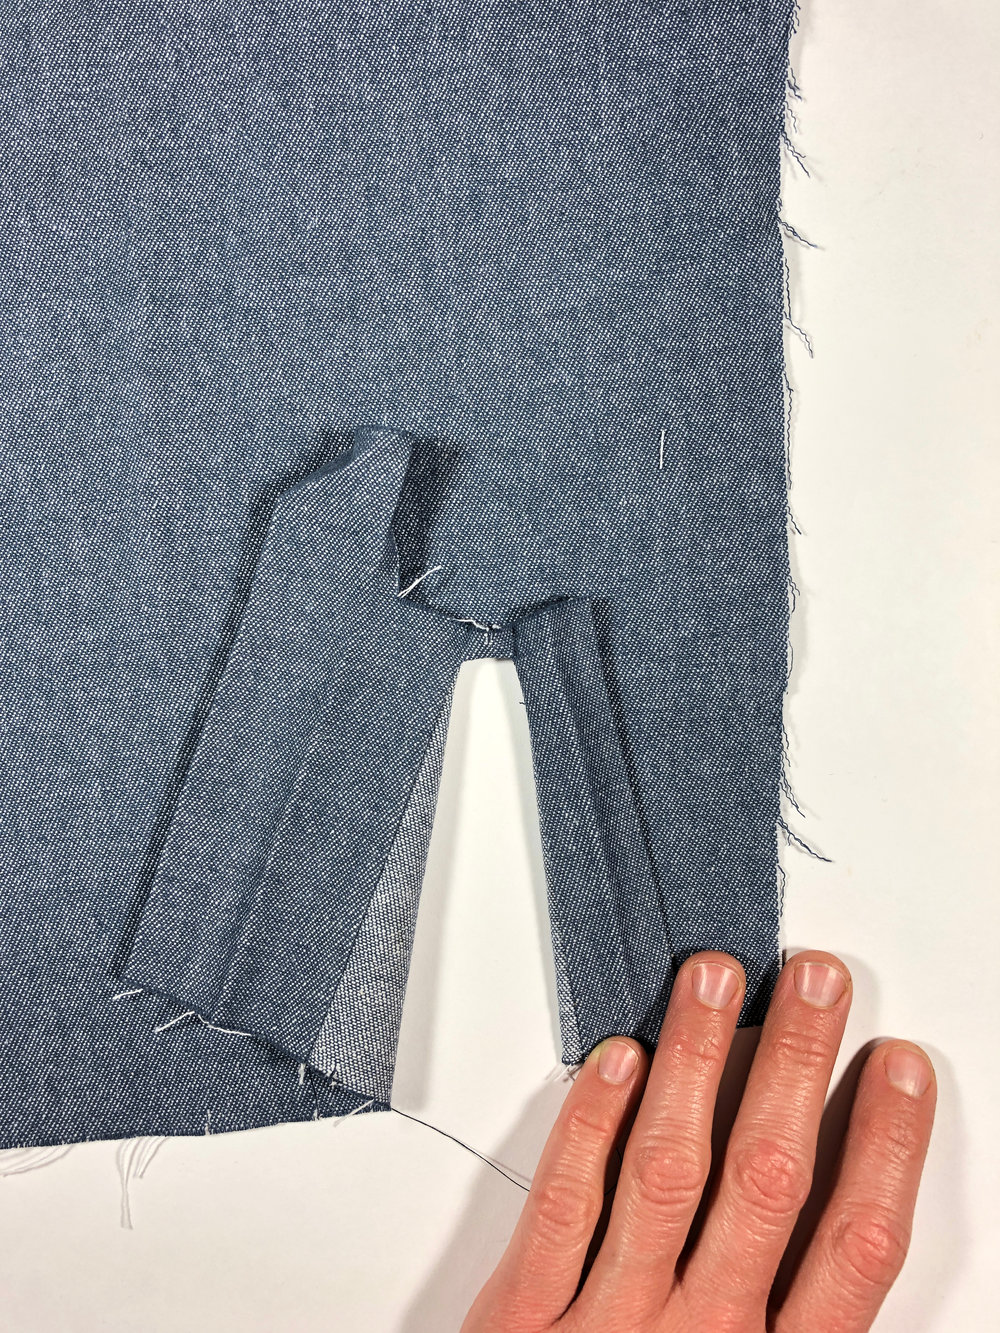 53. Turn the placket through the box to the right side of the sleeve.